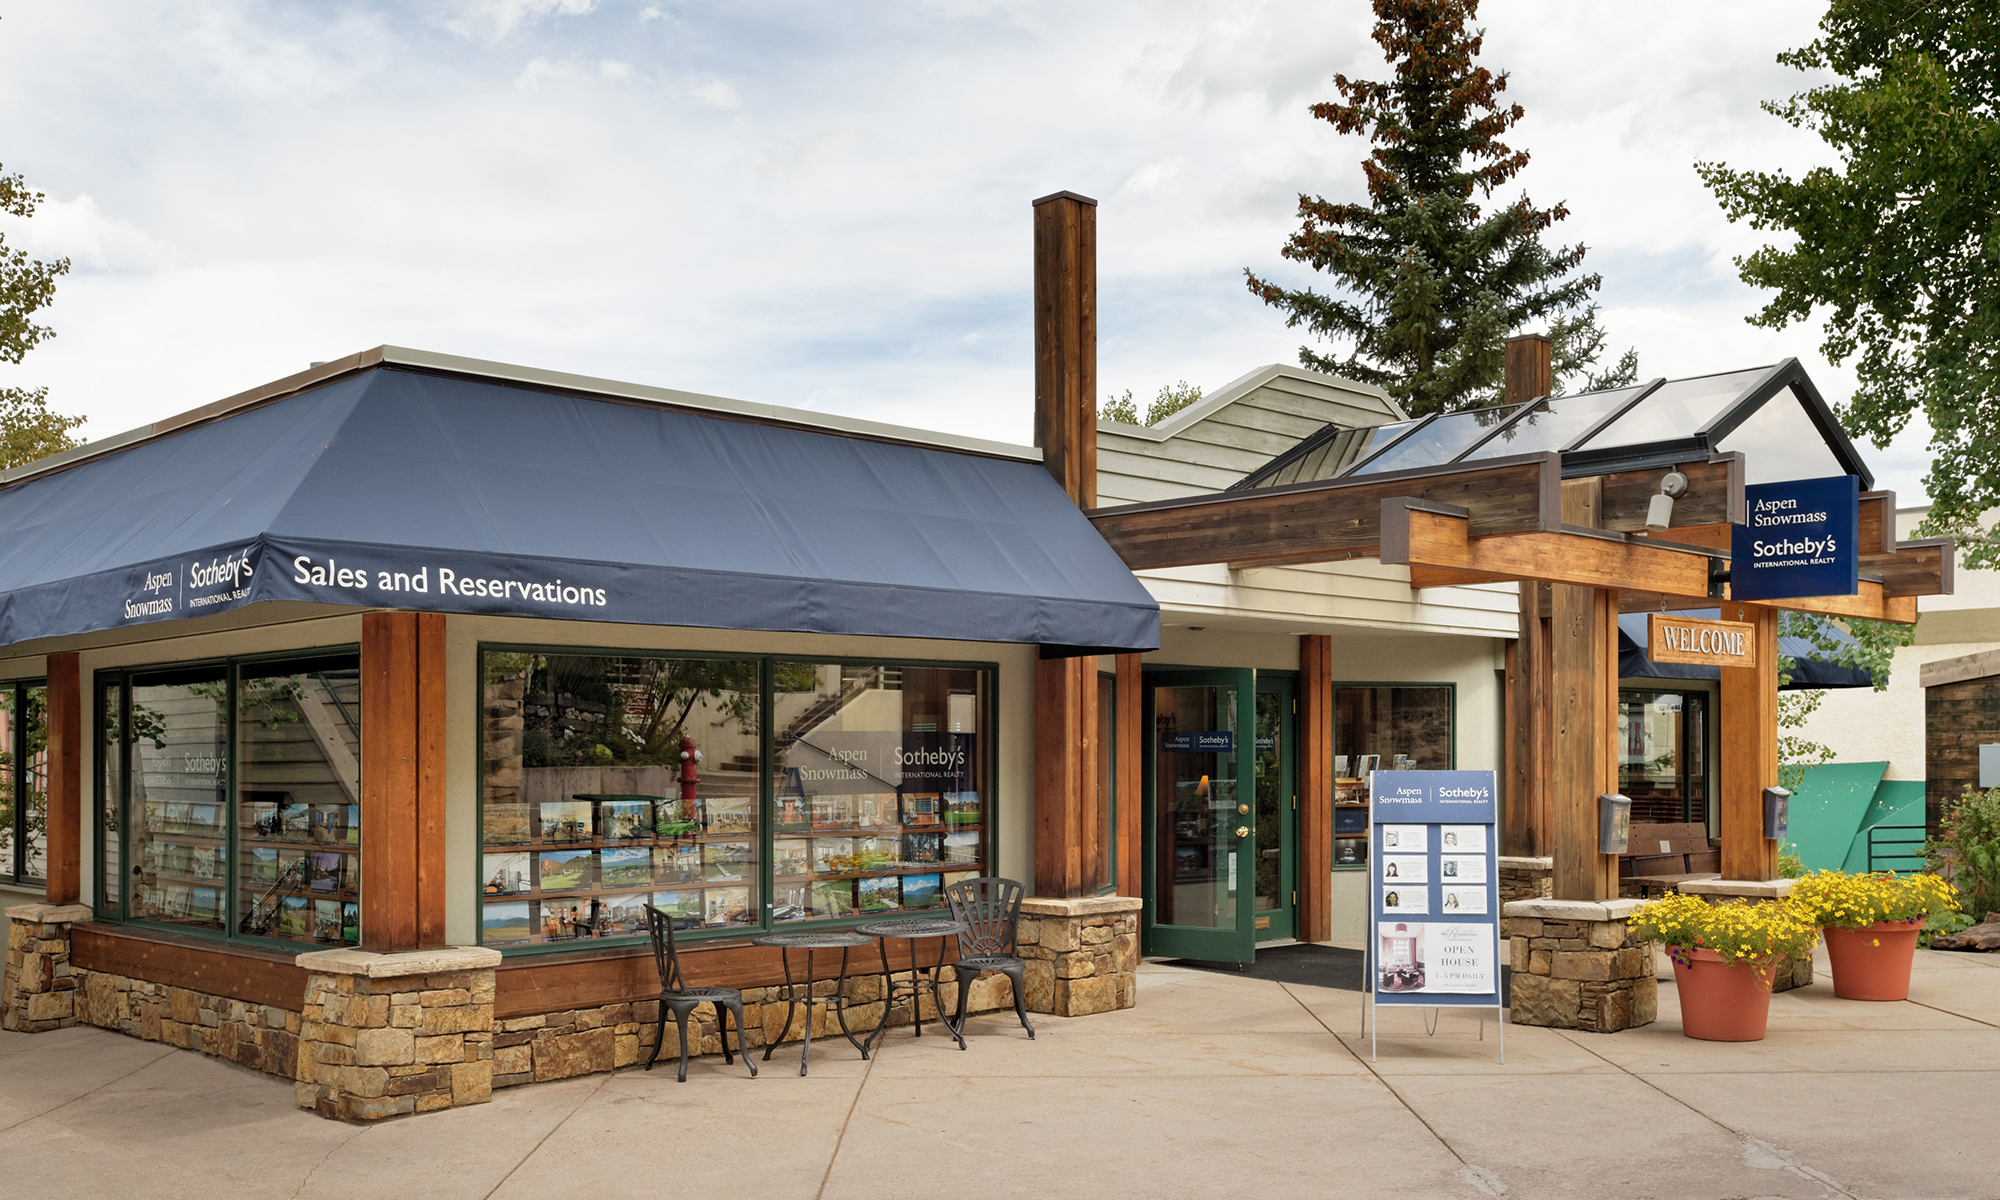 Snowmass Village Mall Office Aspen Snowmass